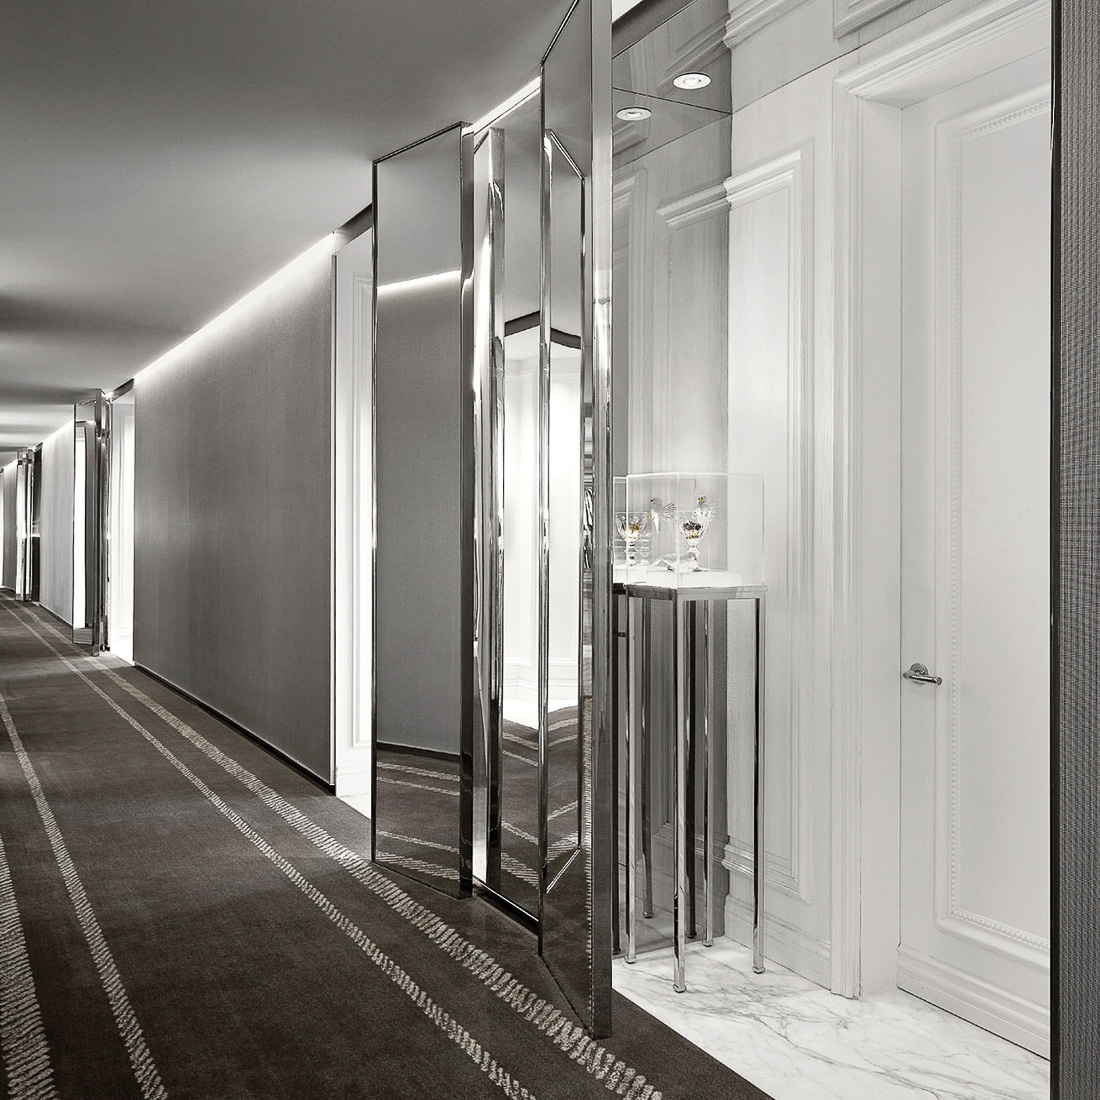 Baccarat Hotel New York - Couloir